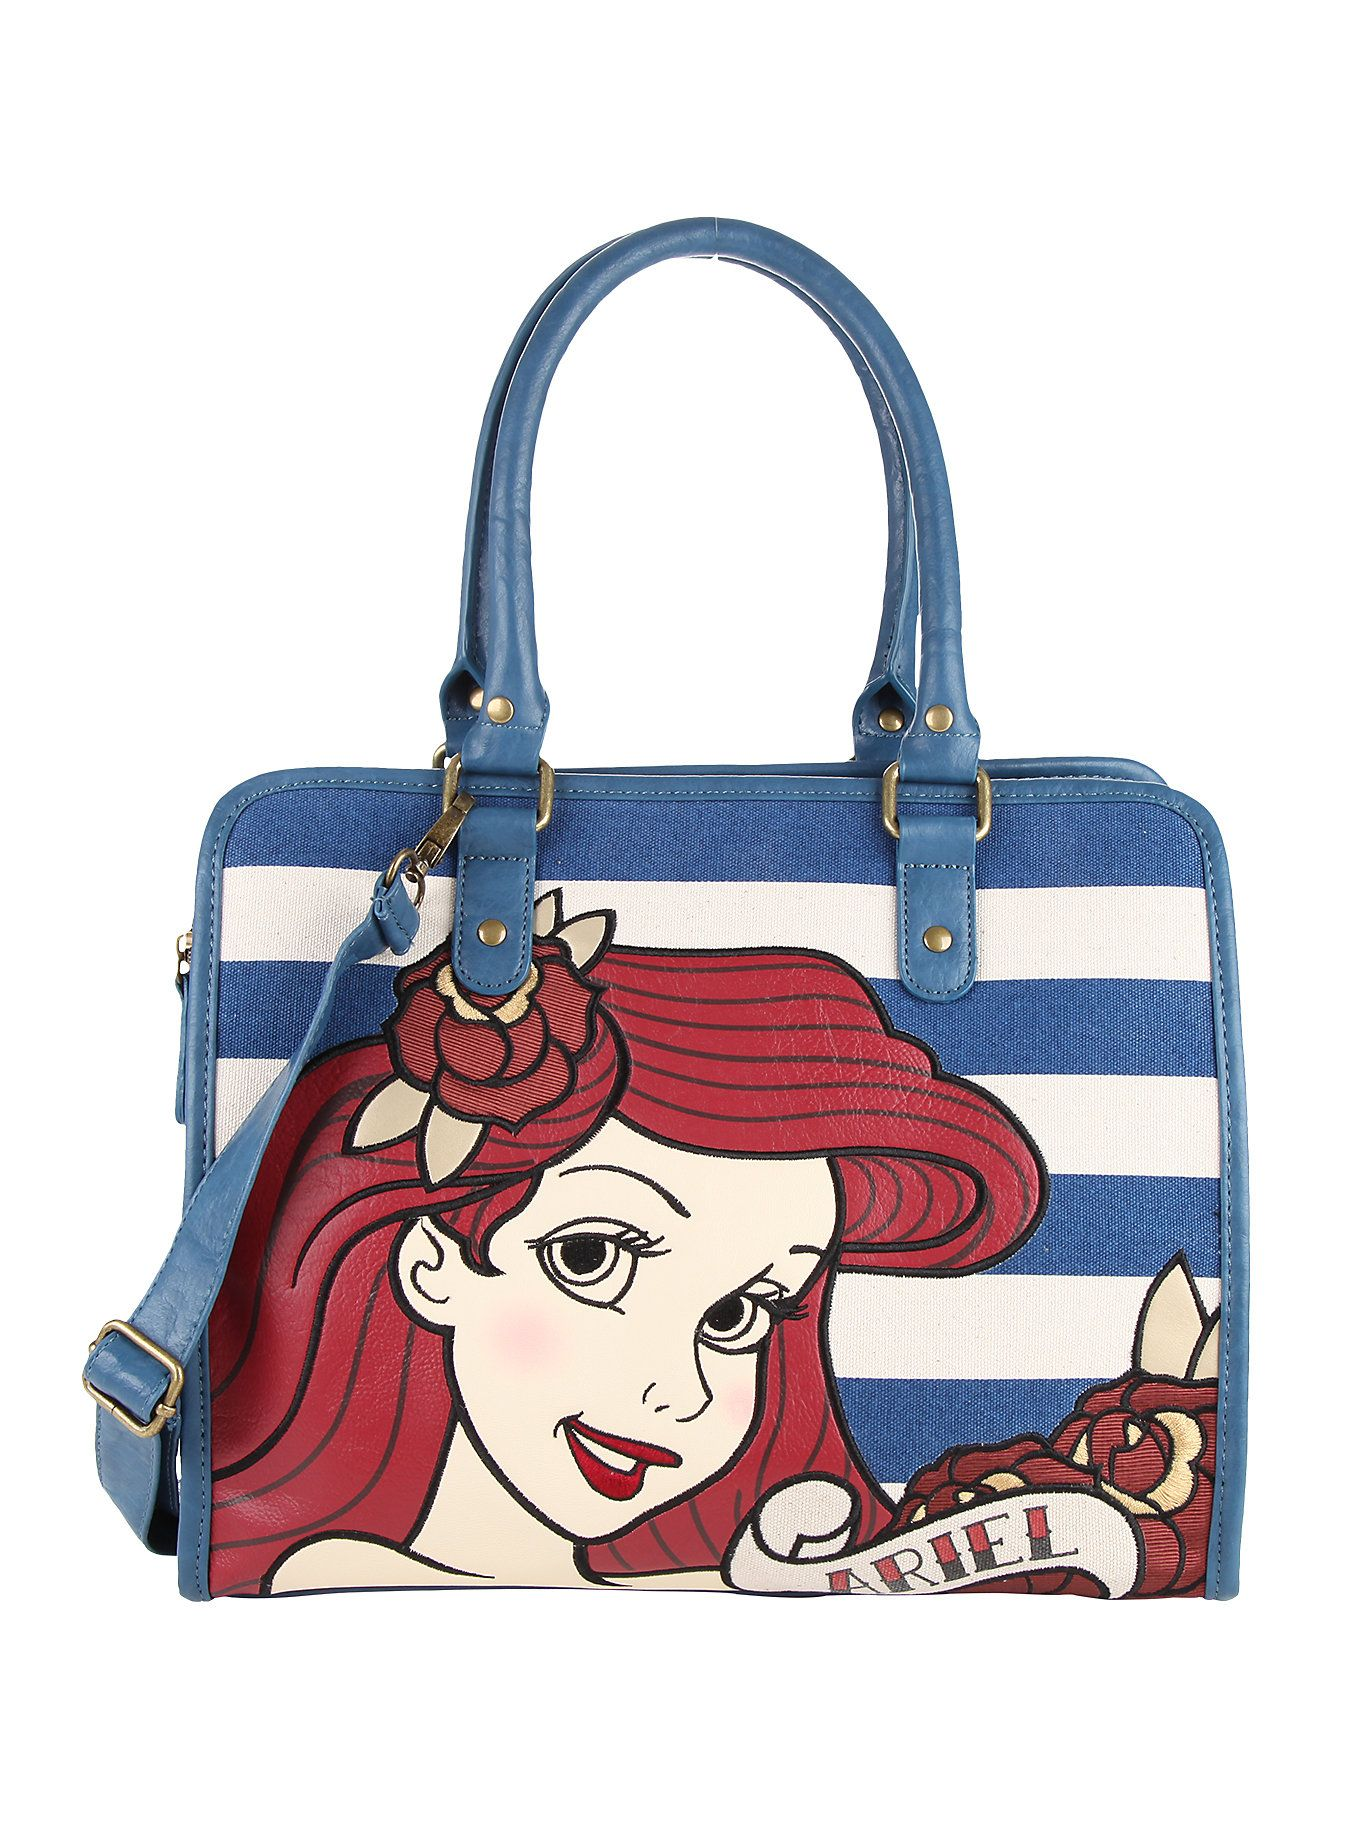 The Little Mermaid Purses on Sale at Hot Topic  8eaf948e4c6cb